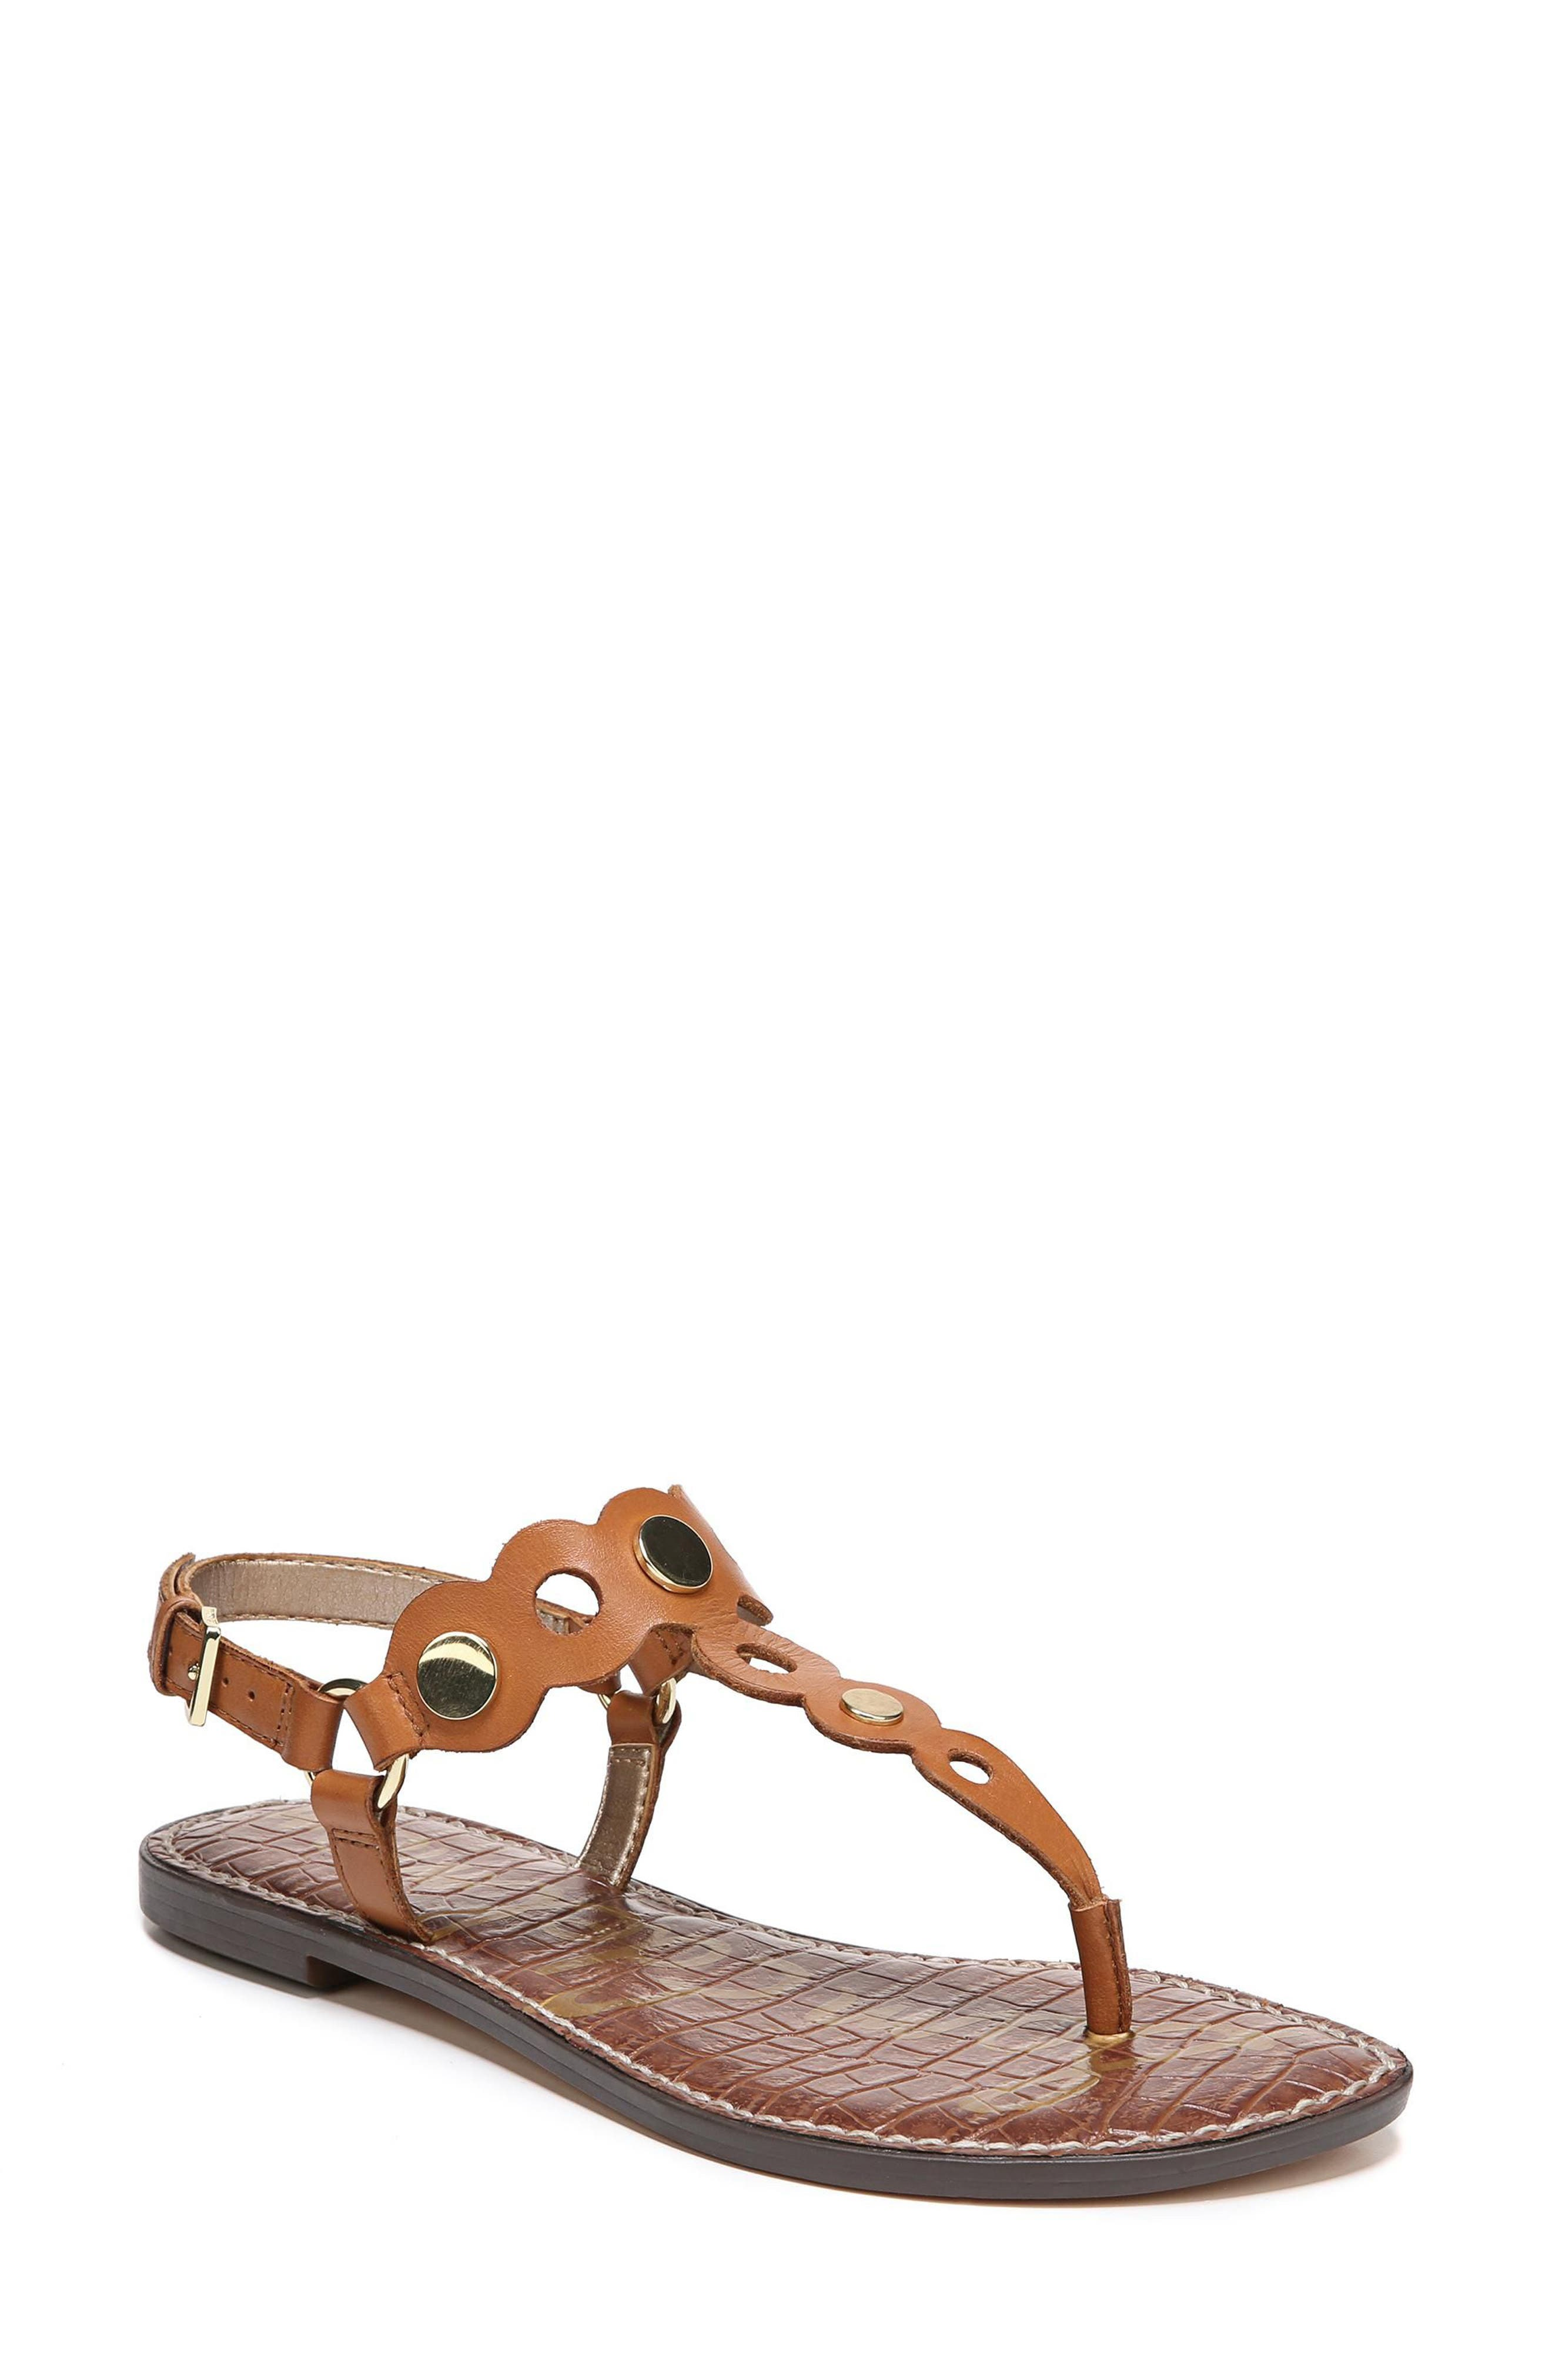 Gilly T-Strap Sandal,                             Main thumbnail 4, color,